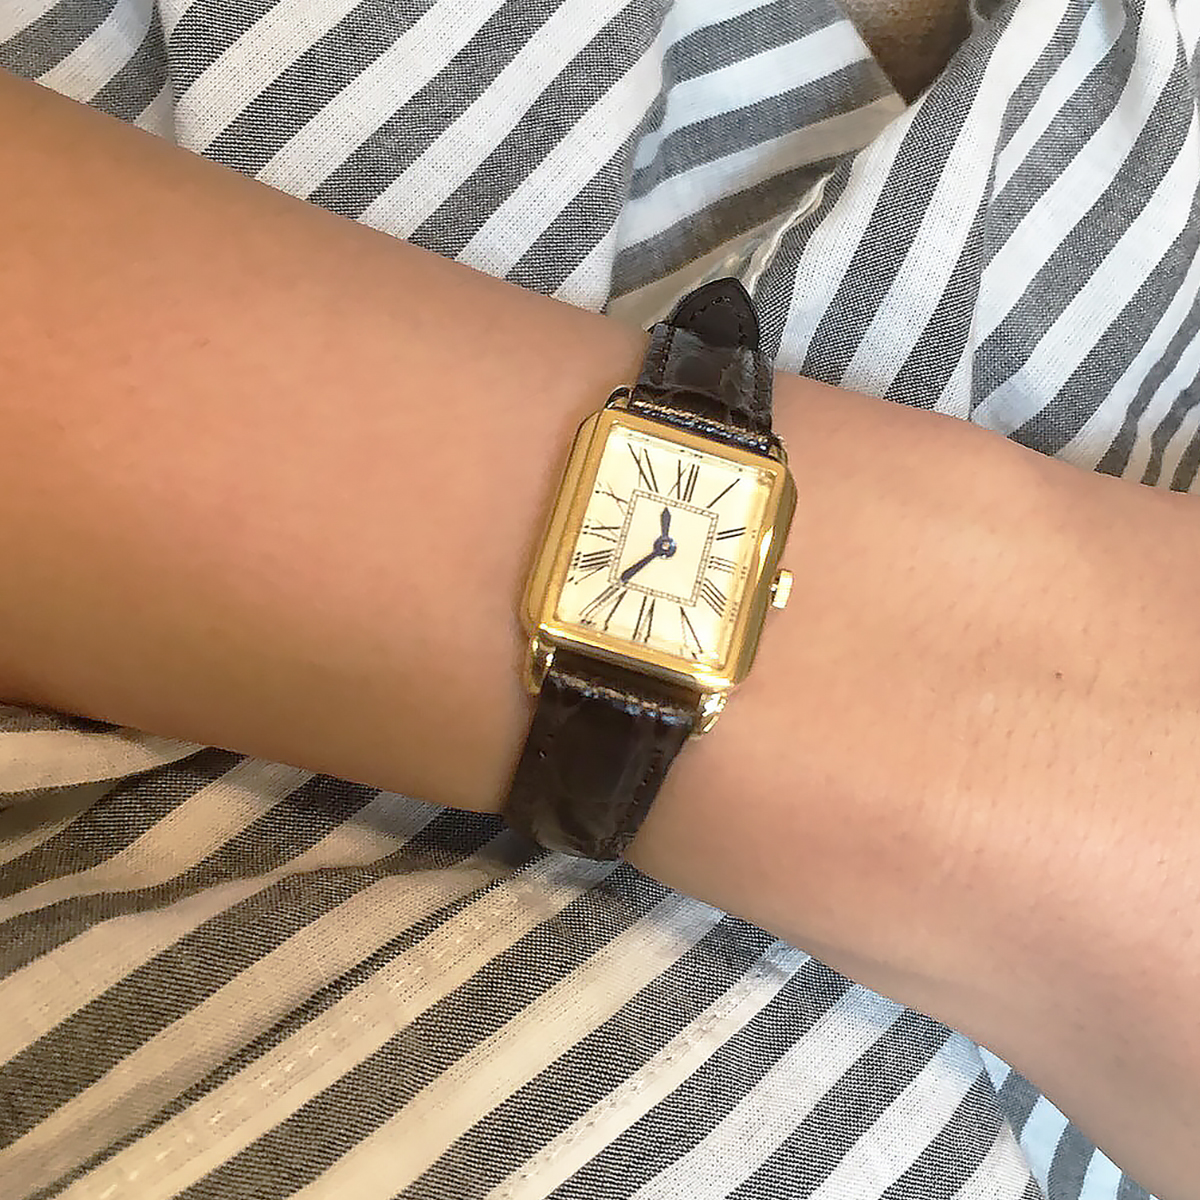 Original Watch